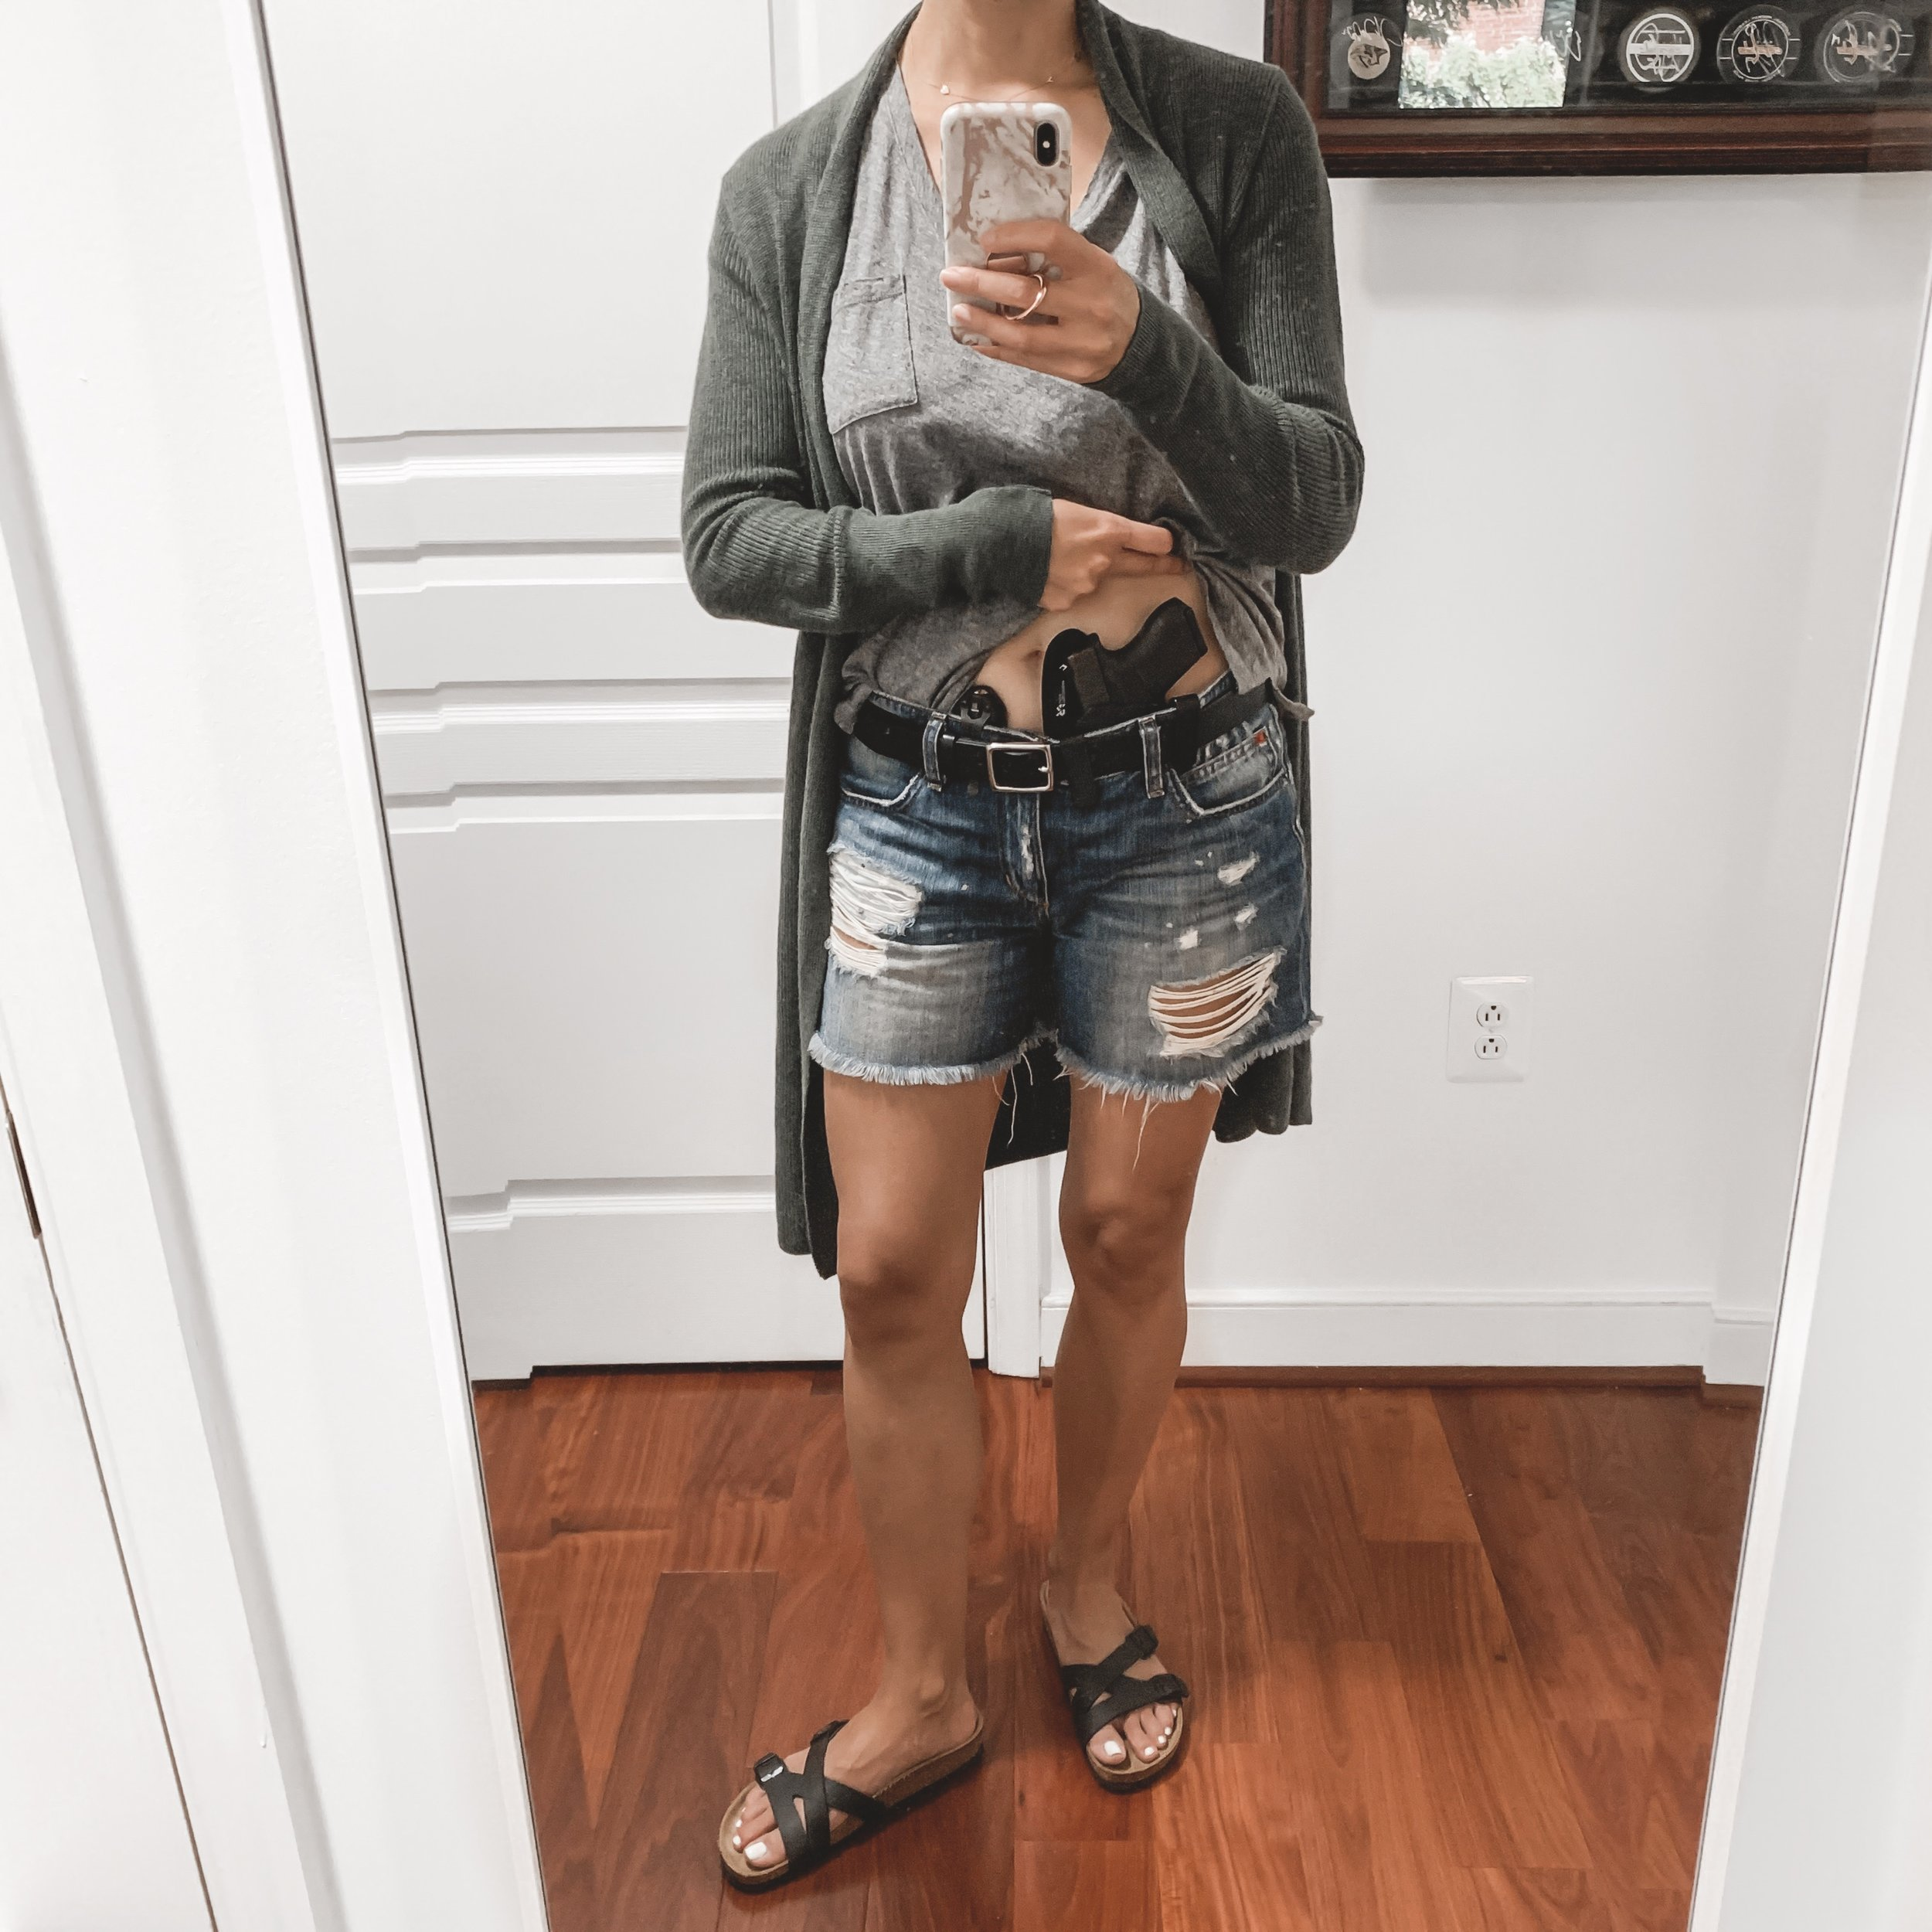 — Outfit Details —    Leith Cardigan       Madewell Shirt      Joe's Jeans Shorts  {   similar   }     Birkenstock Sandals     — Concealed Carry Details —  Self-Defense Tool:  Glock 43    Holster:   StealthGearUSA Ventcore AIWB  *   Flashlight:   SureFire Stiletto     Belt:   Rag and Bone   (*use code SMT10 for 10% off at   stealthgearusa.com  )